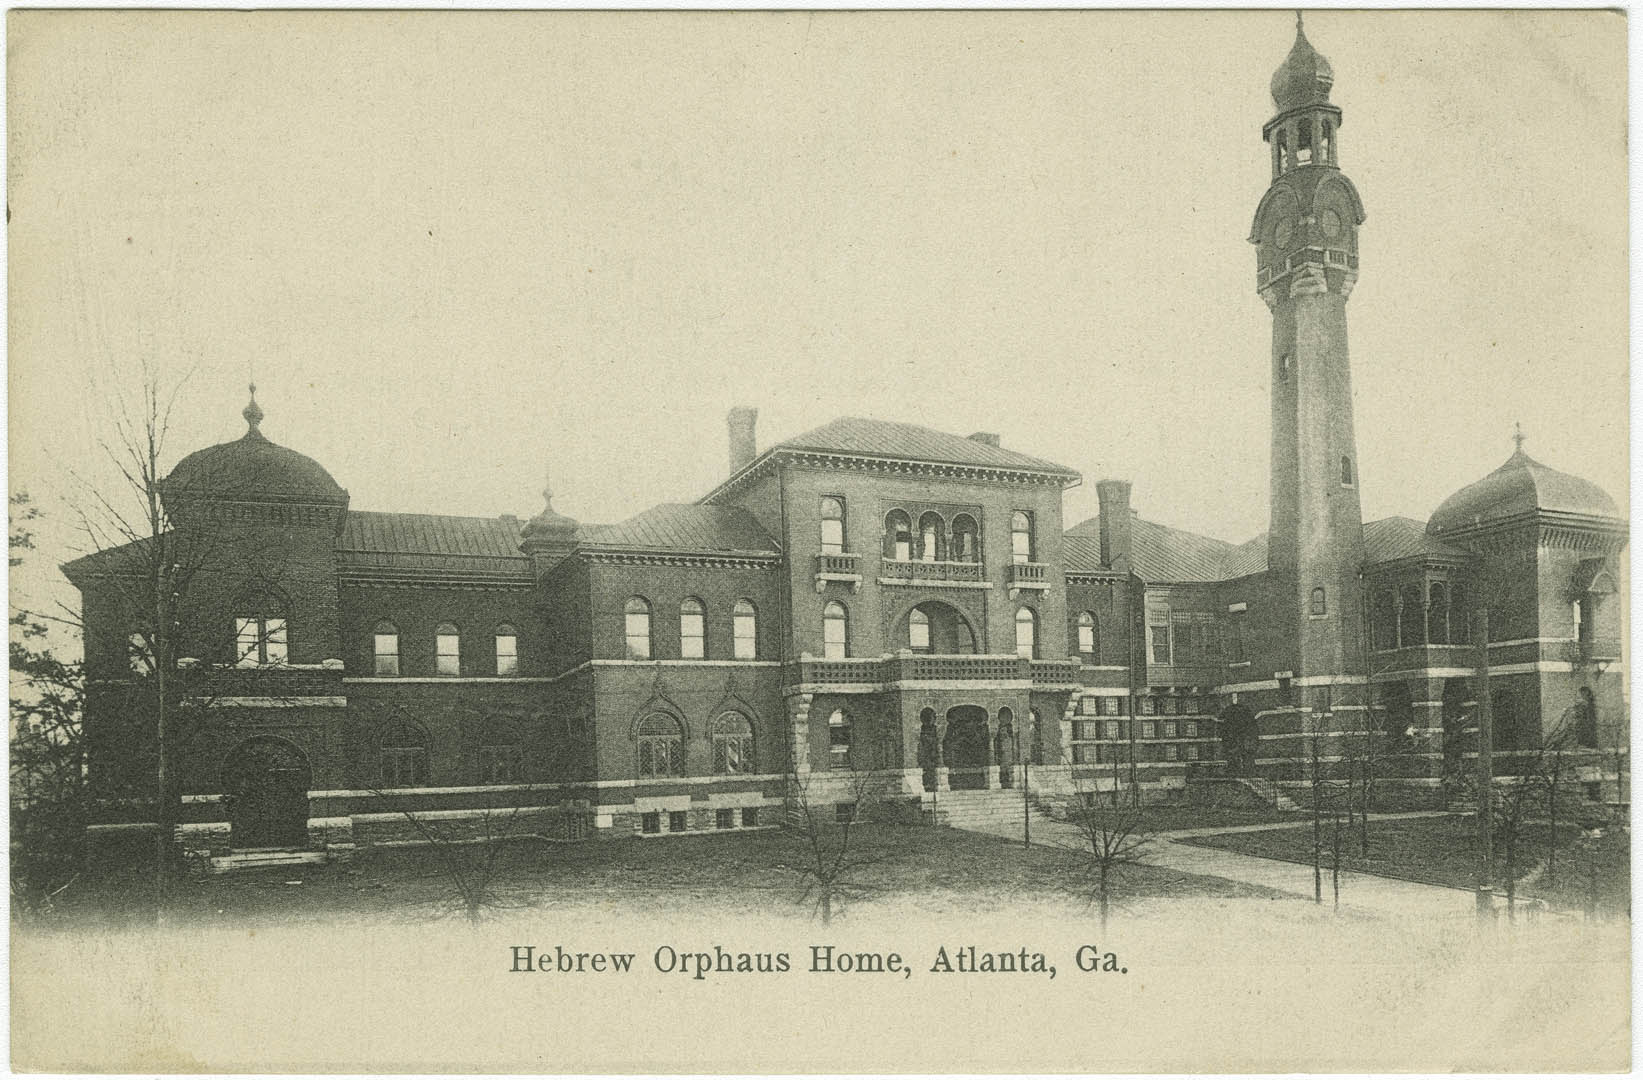 Hebrew Orphans Home, Atlanta, Ga.